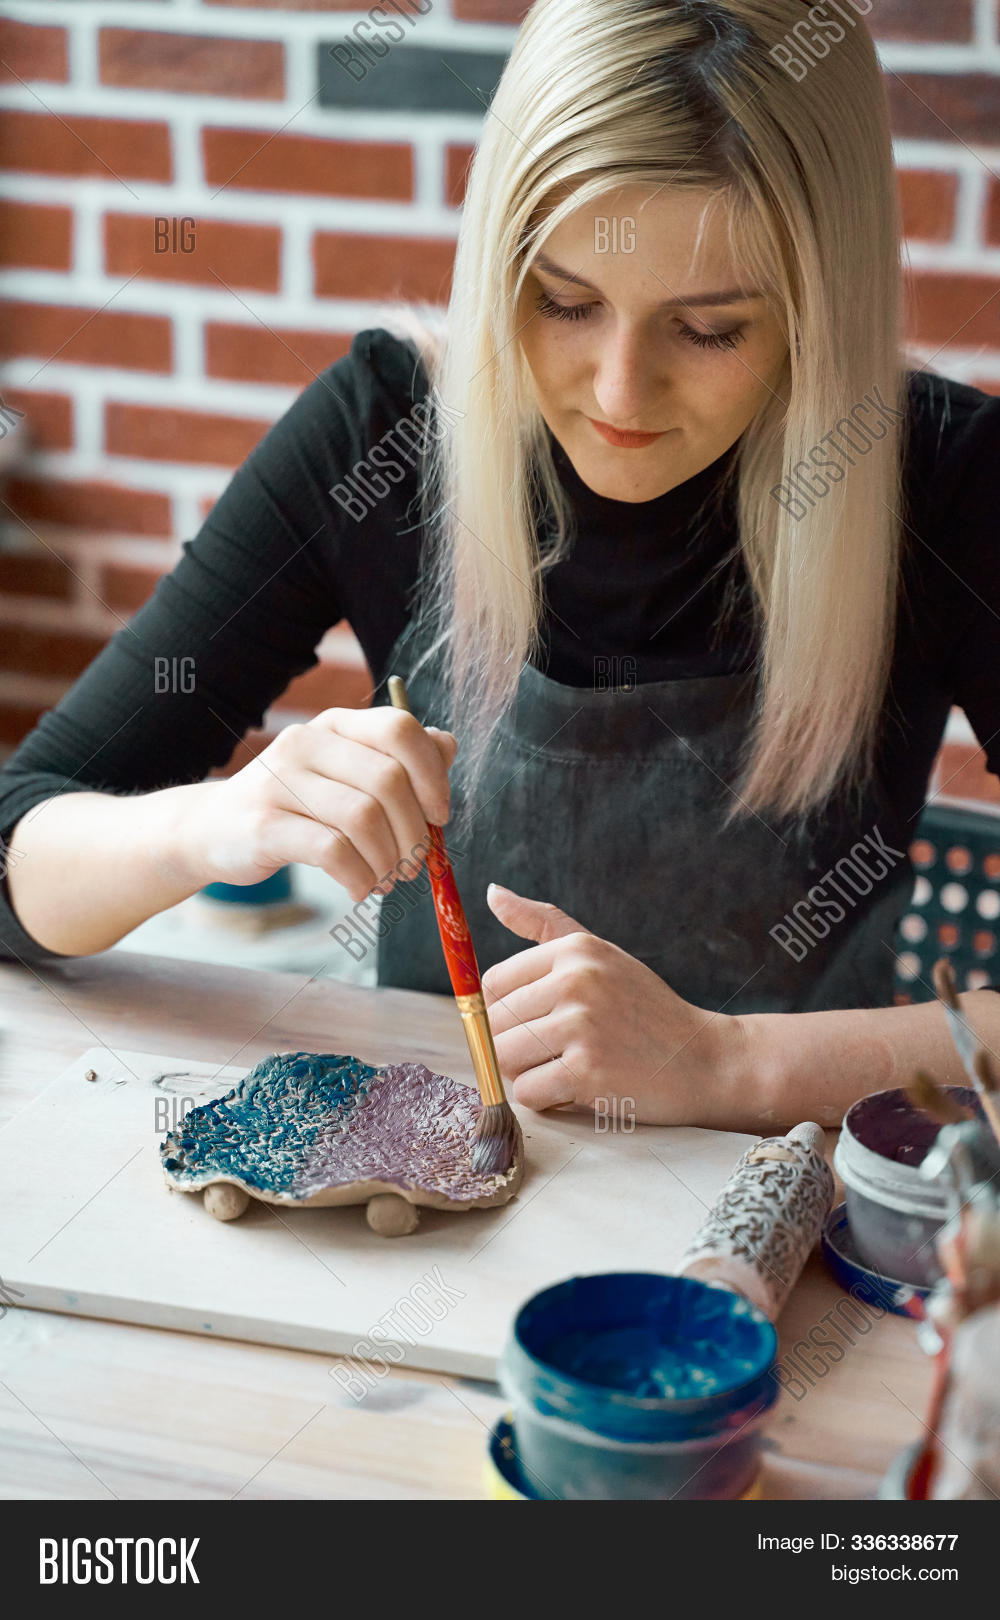 Woman making pattern on ceramic plate with paint brush. Creative hobby concept. Earn extra money, side hustle, turning hobbies into cash, passion into job, vertical